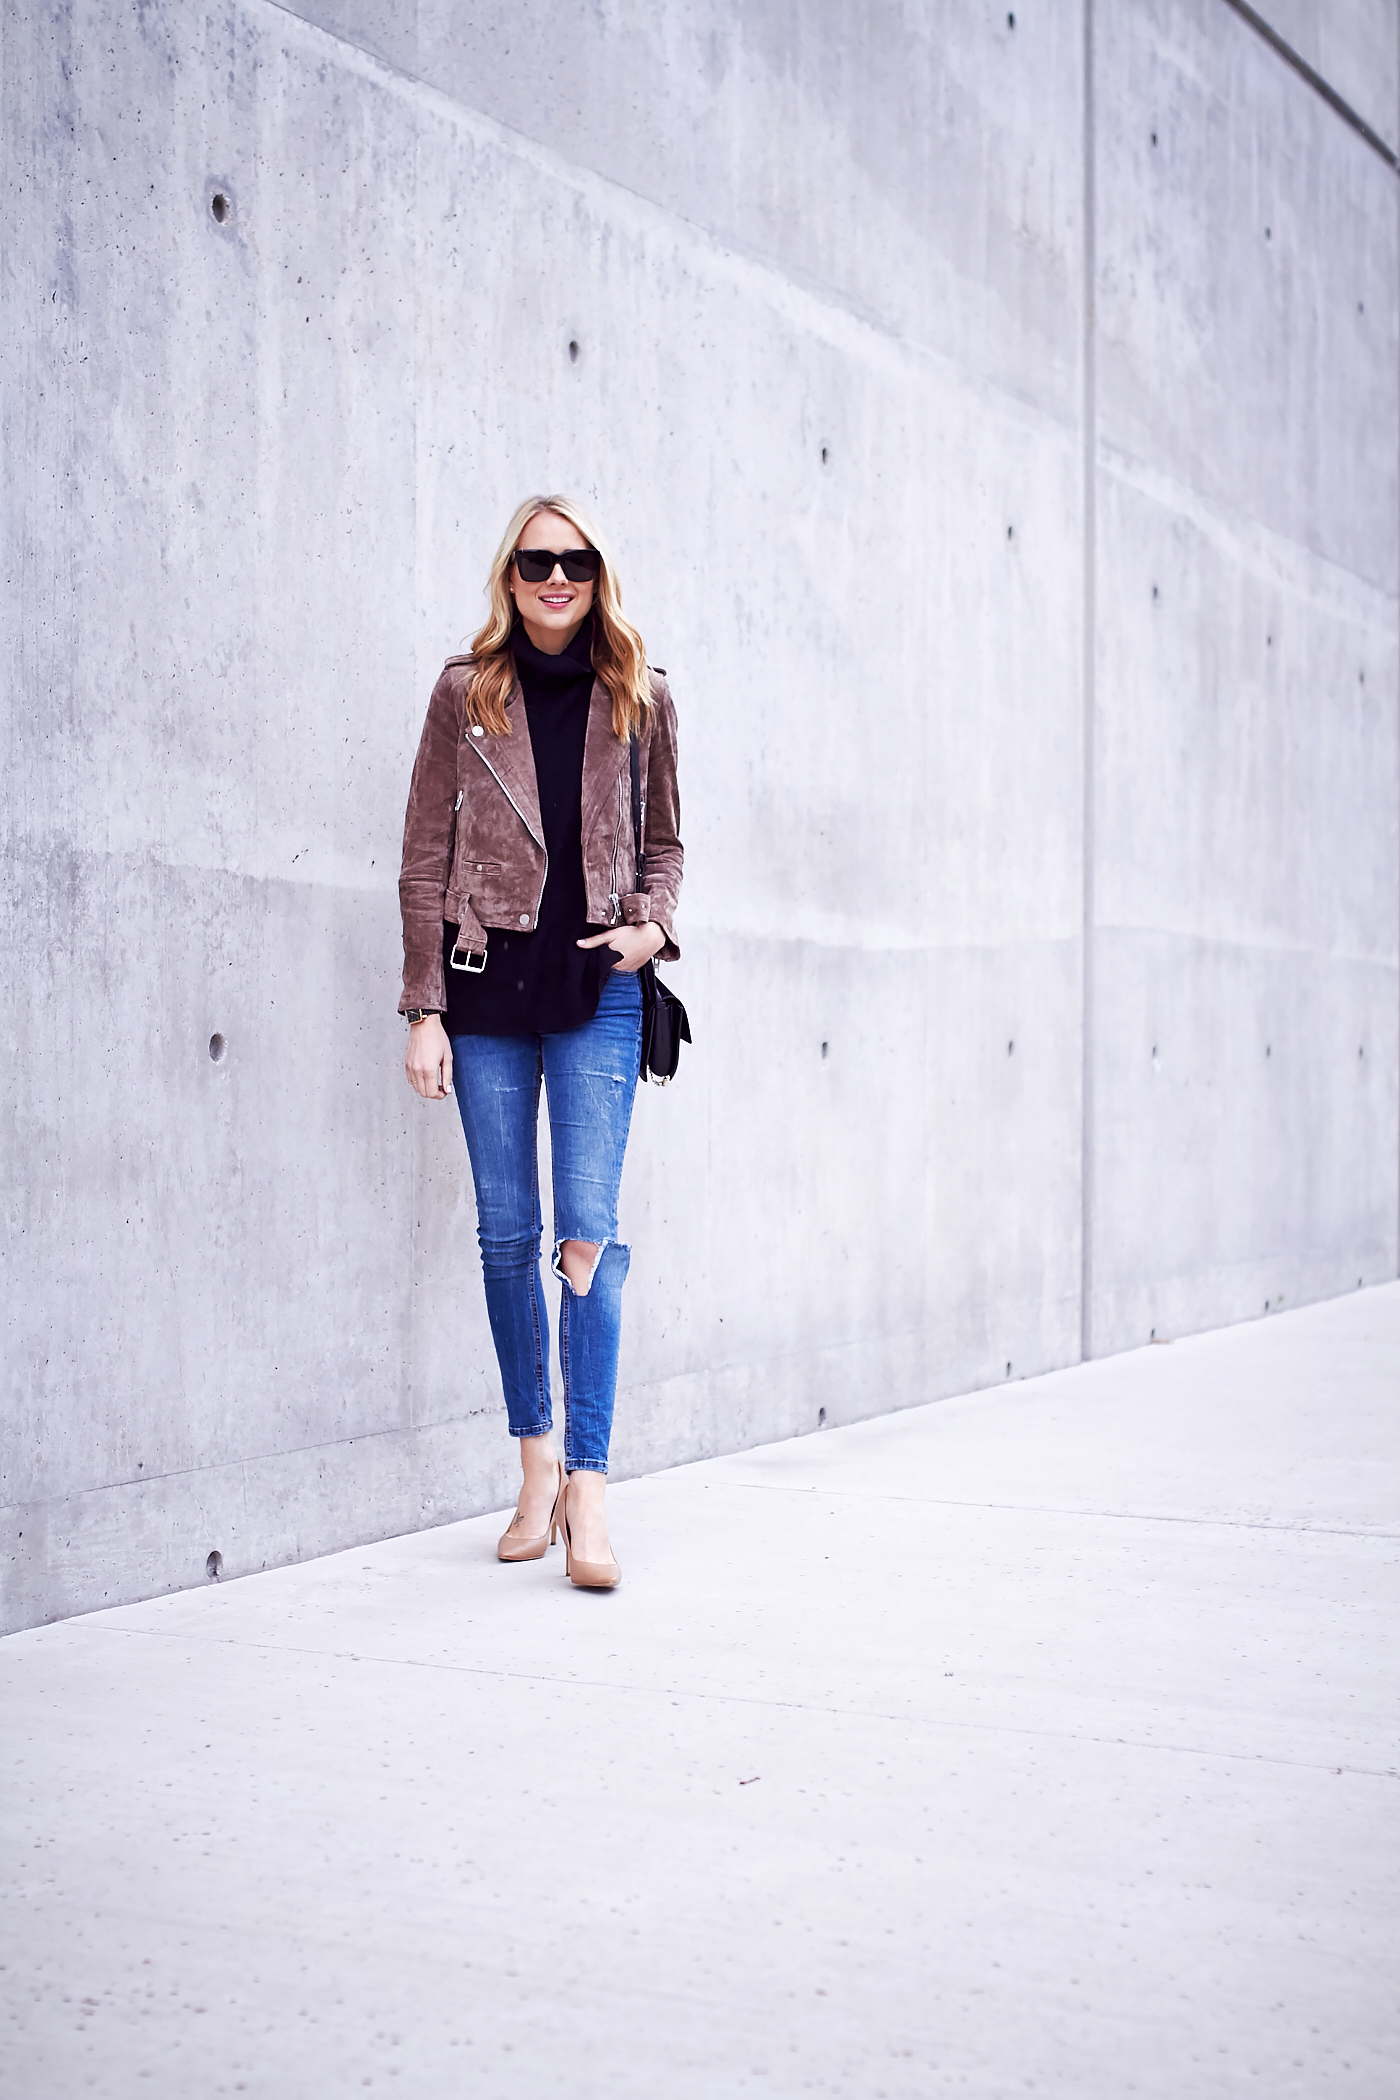 fashion-jackson-blanknyc-morning-suede-moto-jacket-black-sweater-ripped-denim-jeans-nude-pumps-black-sunglasses